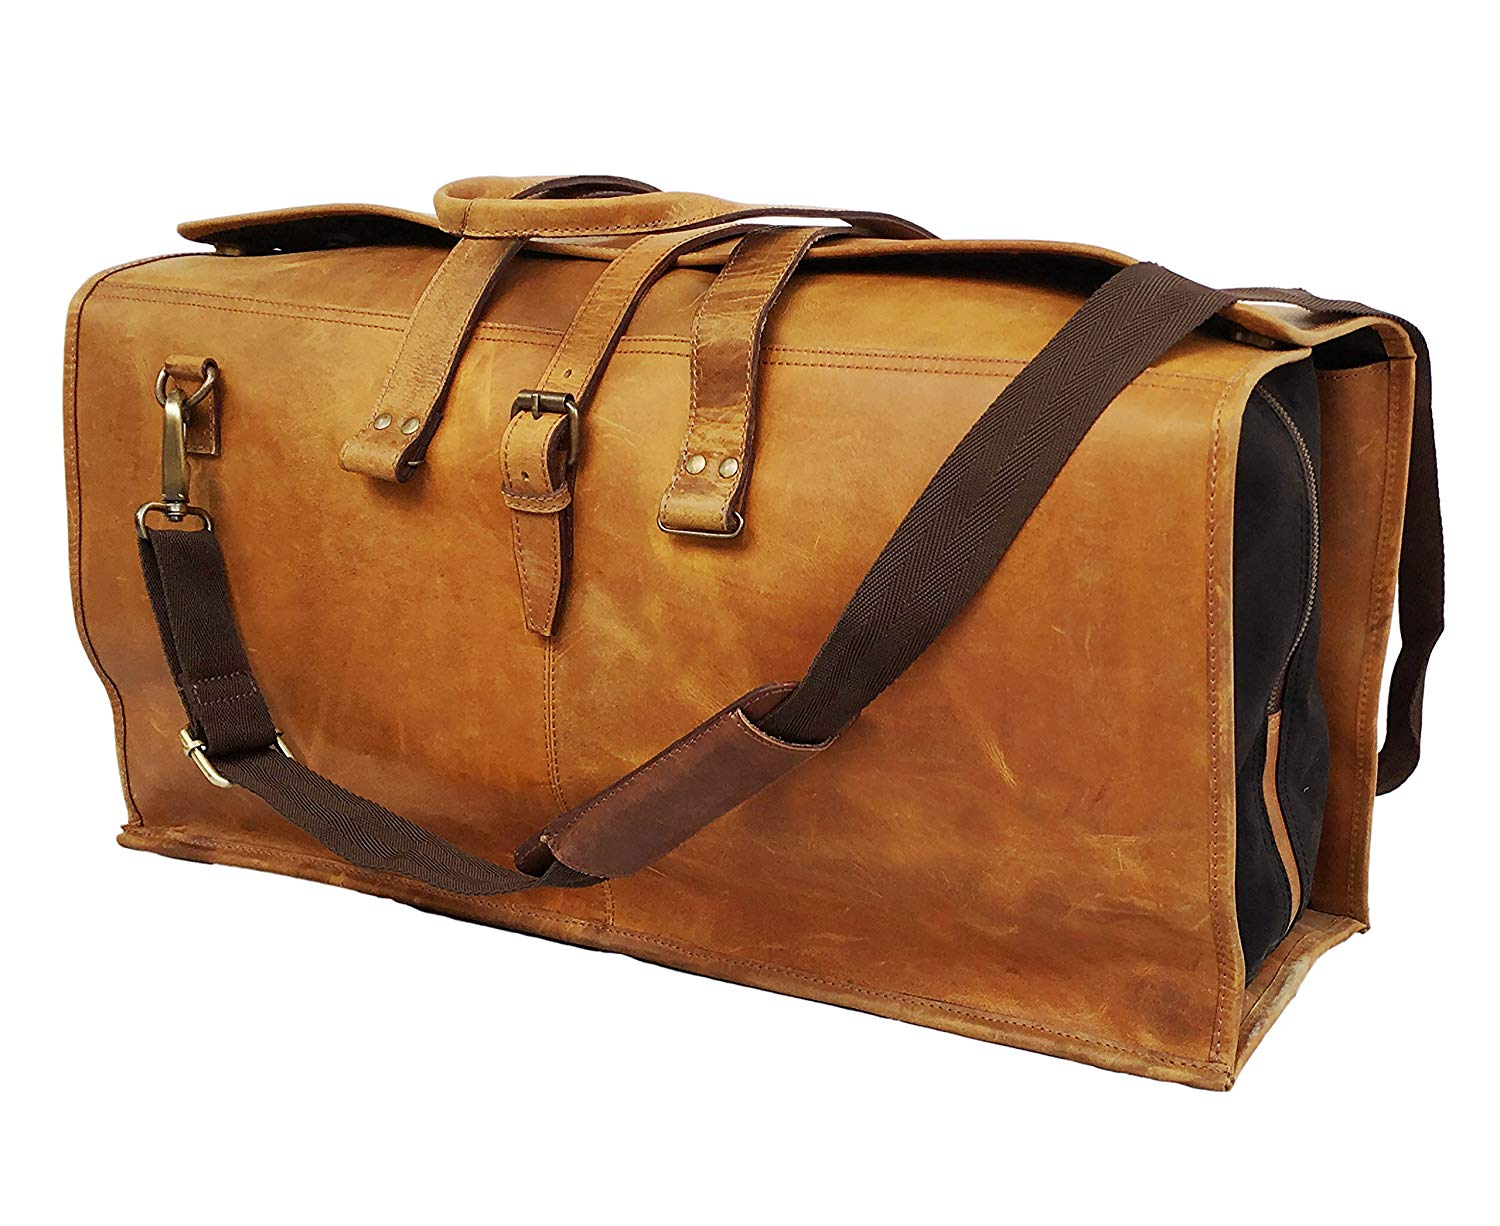 24 Inch Leather Duffel Bags Leather Luggage Canvas Bags Leather Travel Bags Leather Holdall Leather Canvas Bags